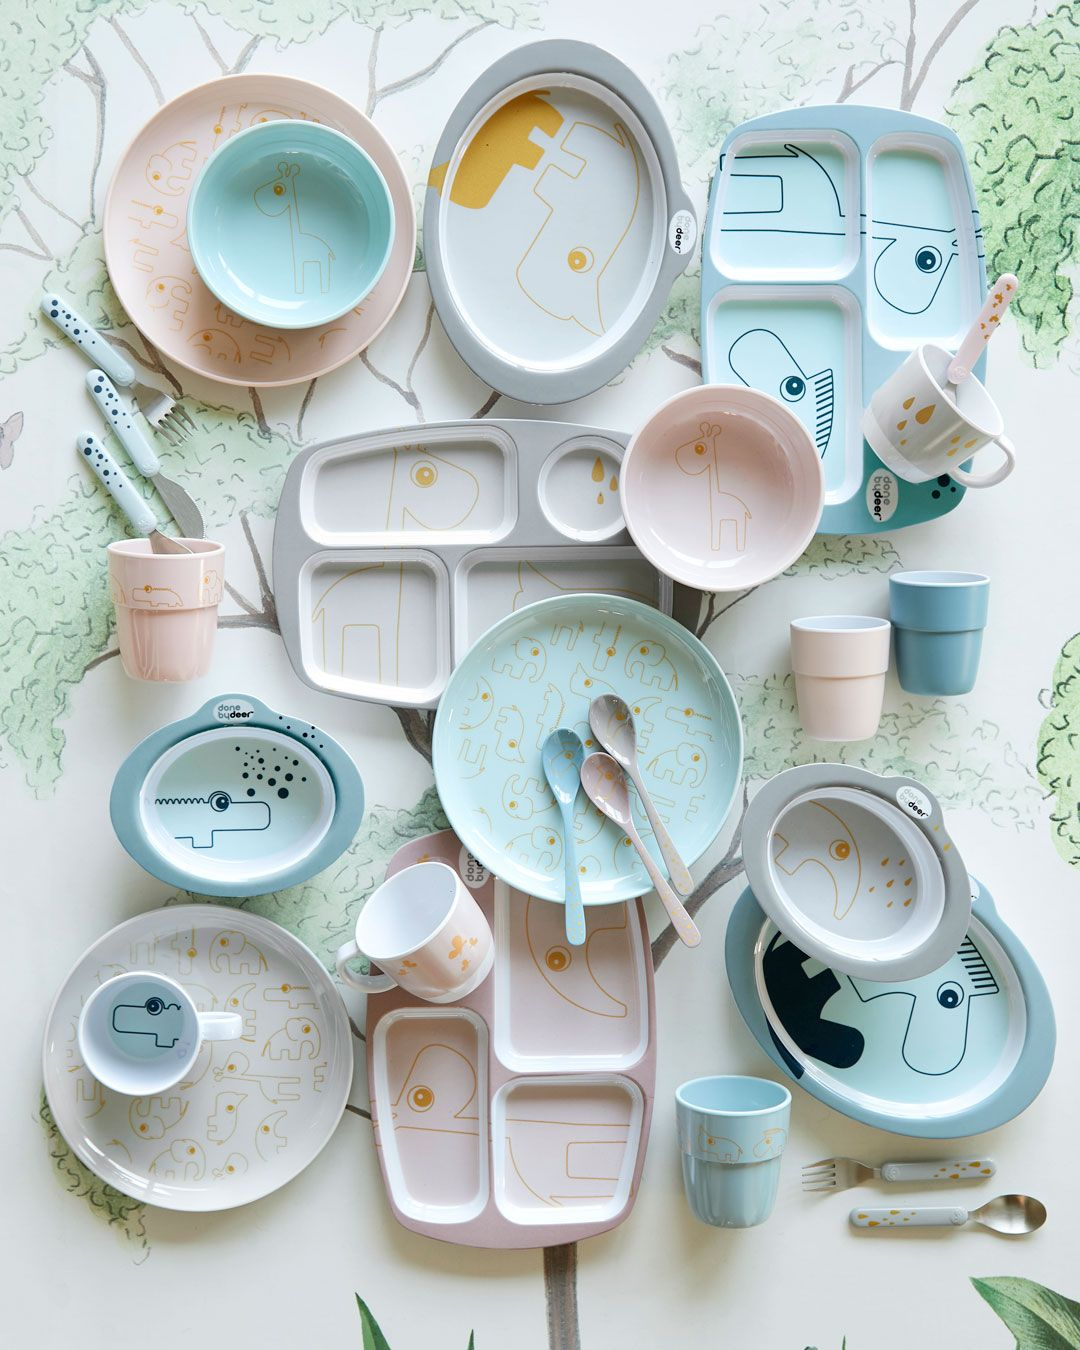 Pastel powder, blue and grey plates, bowsl, cups, cutlery and spoons. Make eating fun with cute kids tableware with golden details. Roztomilé Děti